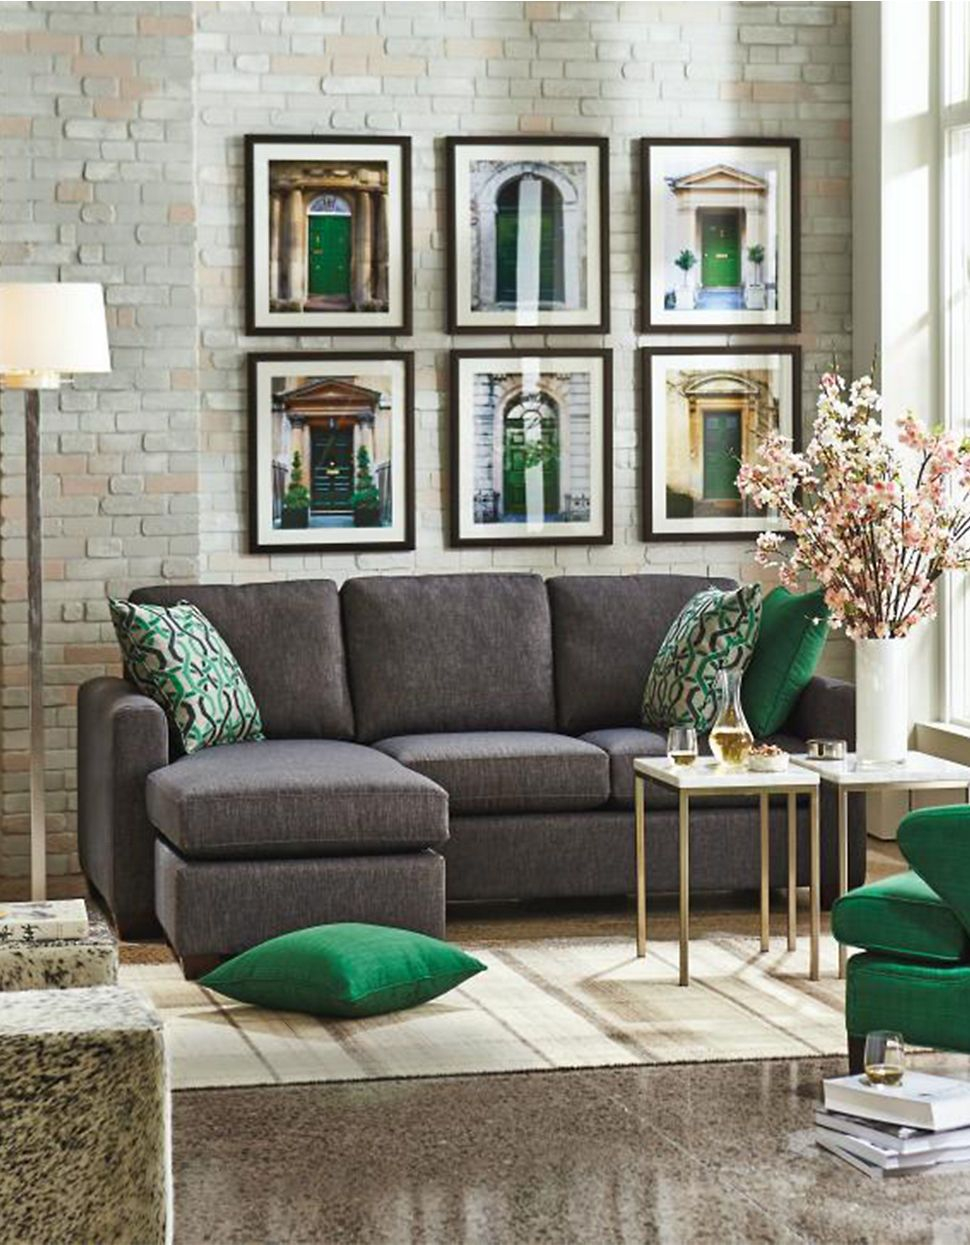 Blackcharcoal Green And Gold Andrea Sectional Sofa With Chaise